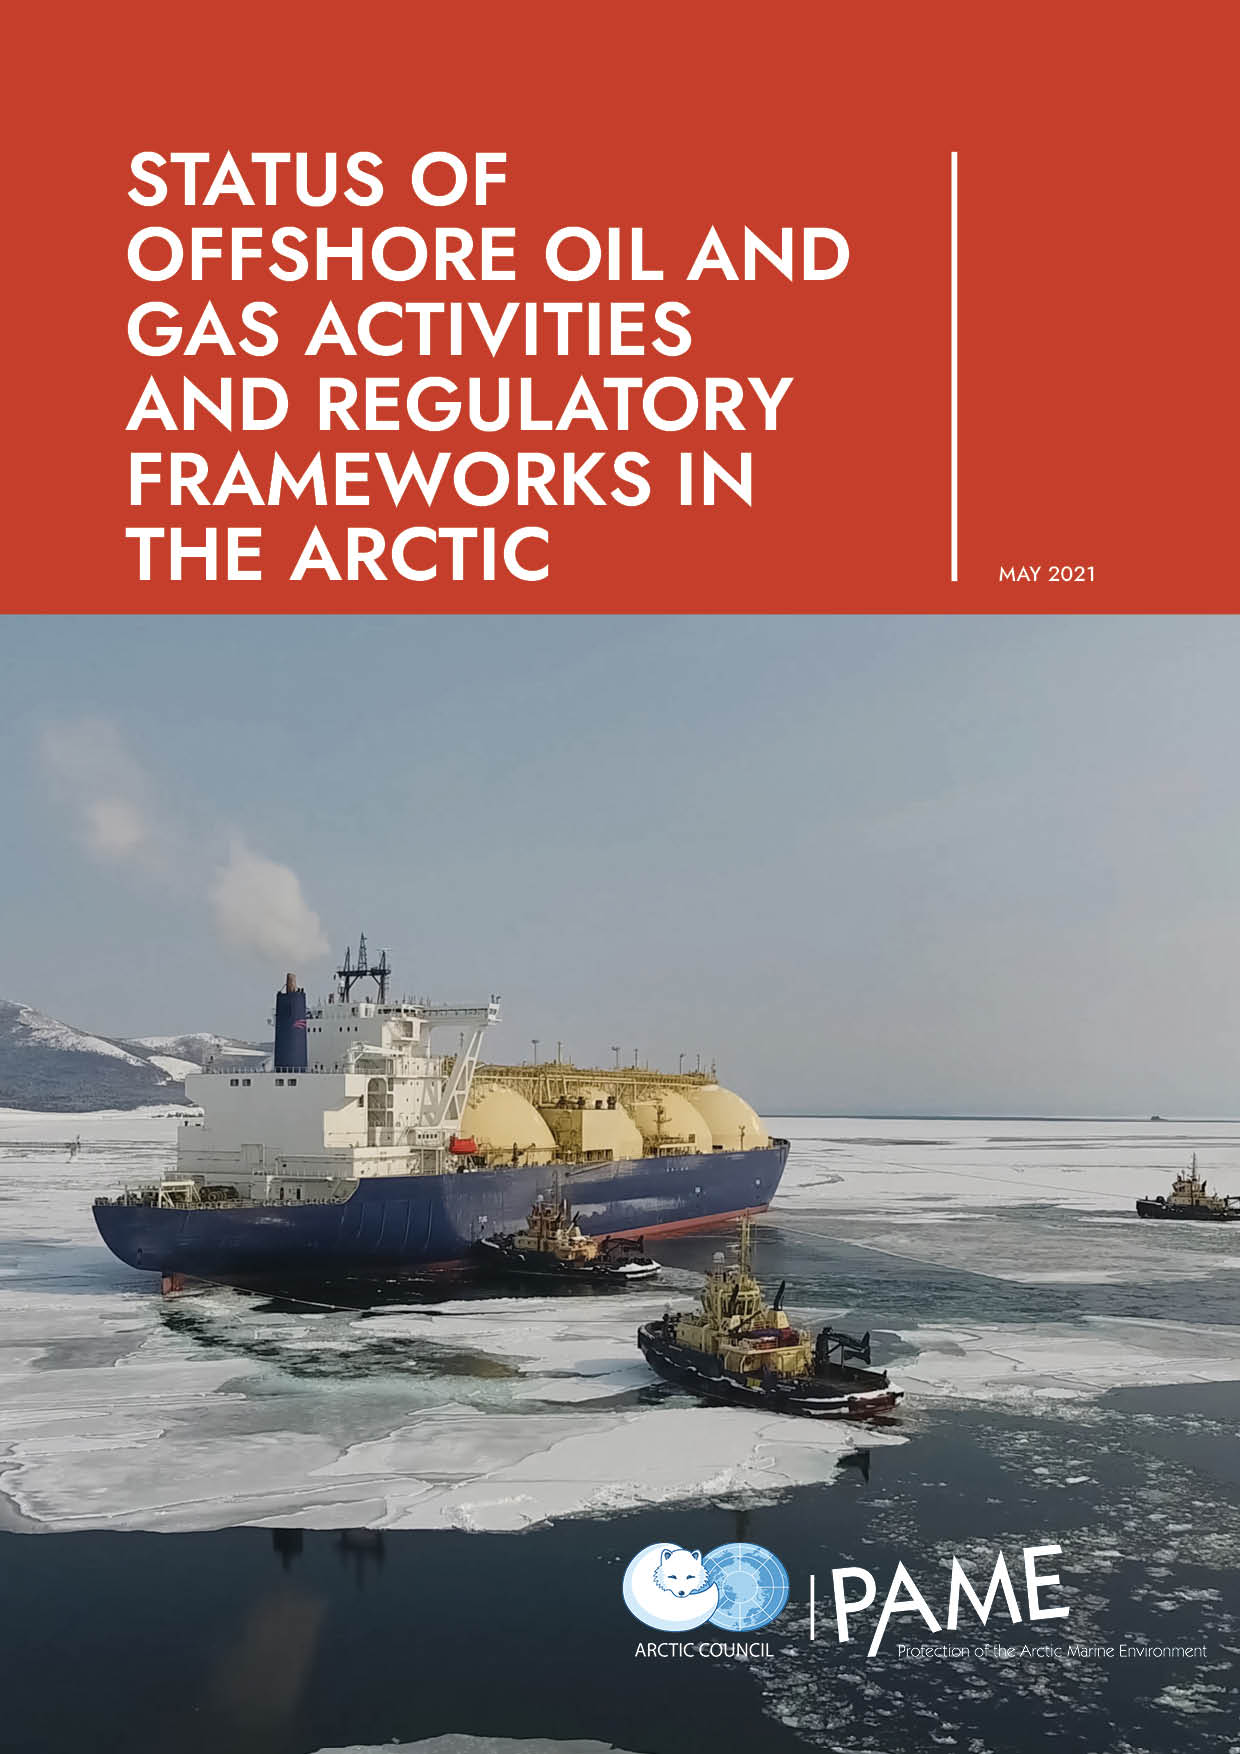 Status Report on Offshore Oil and Gas Activities and Regulatory Frameworks in the Arctic